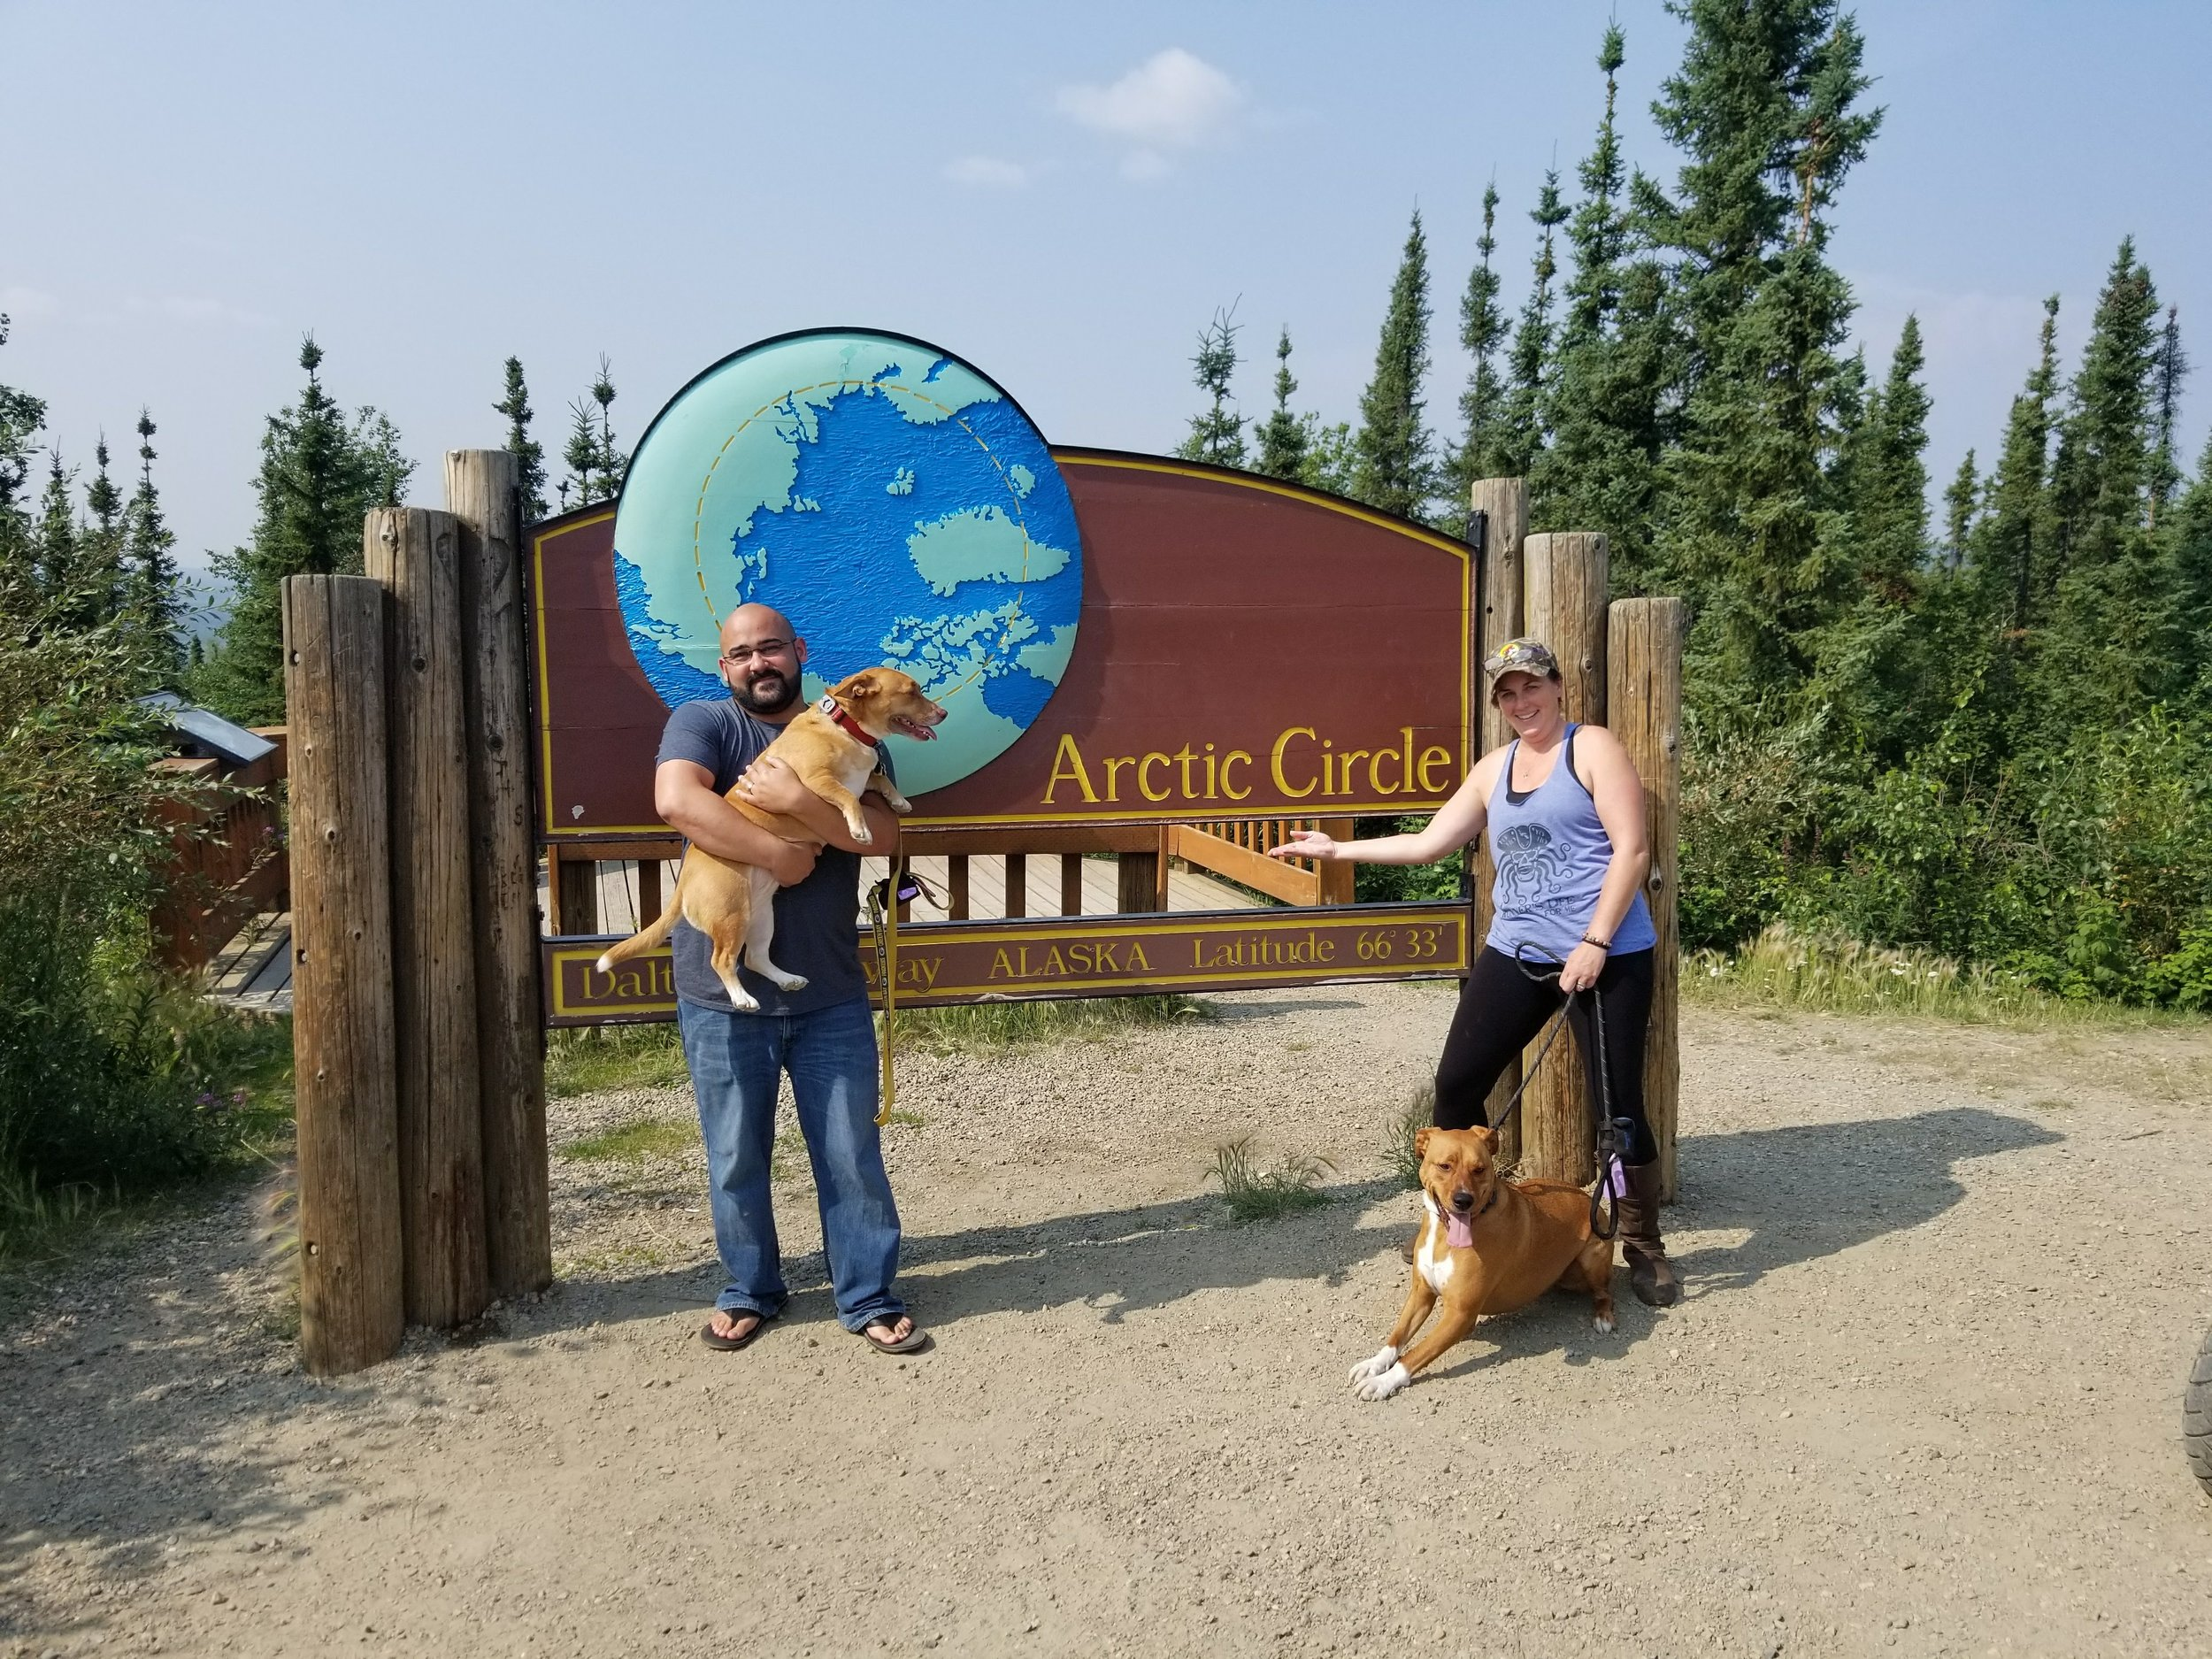 Looks like we made it. The dogs were not into taking a picture too many new smells.